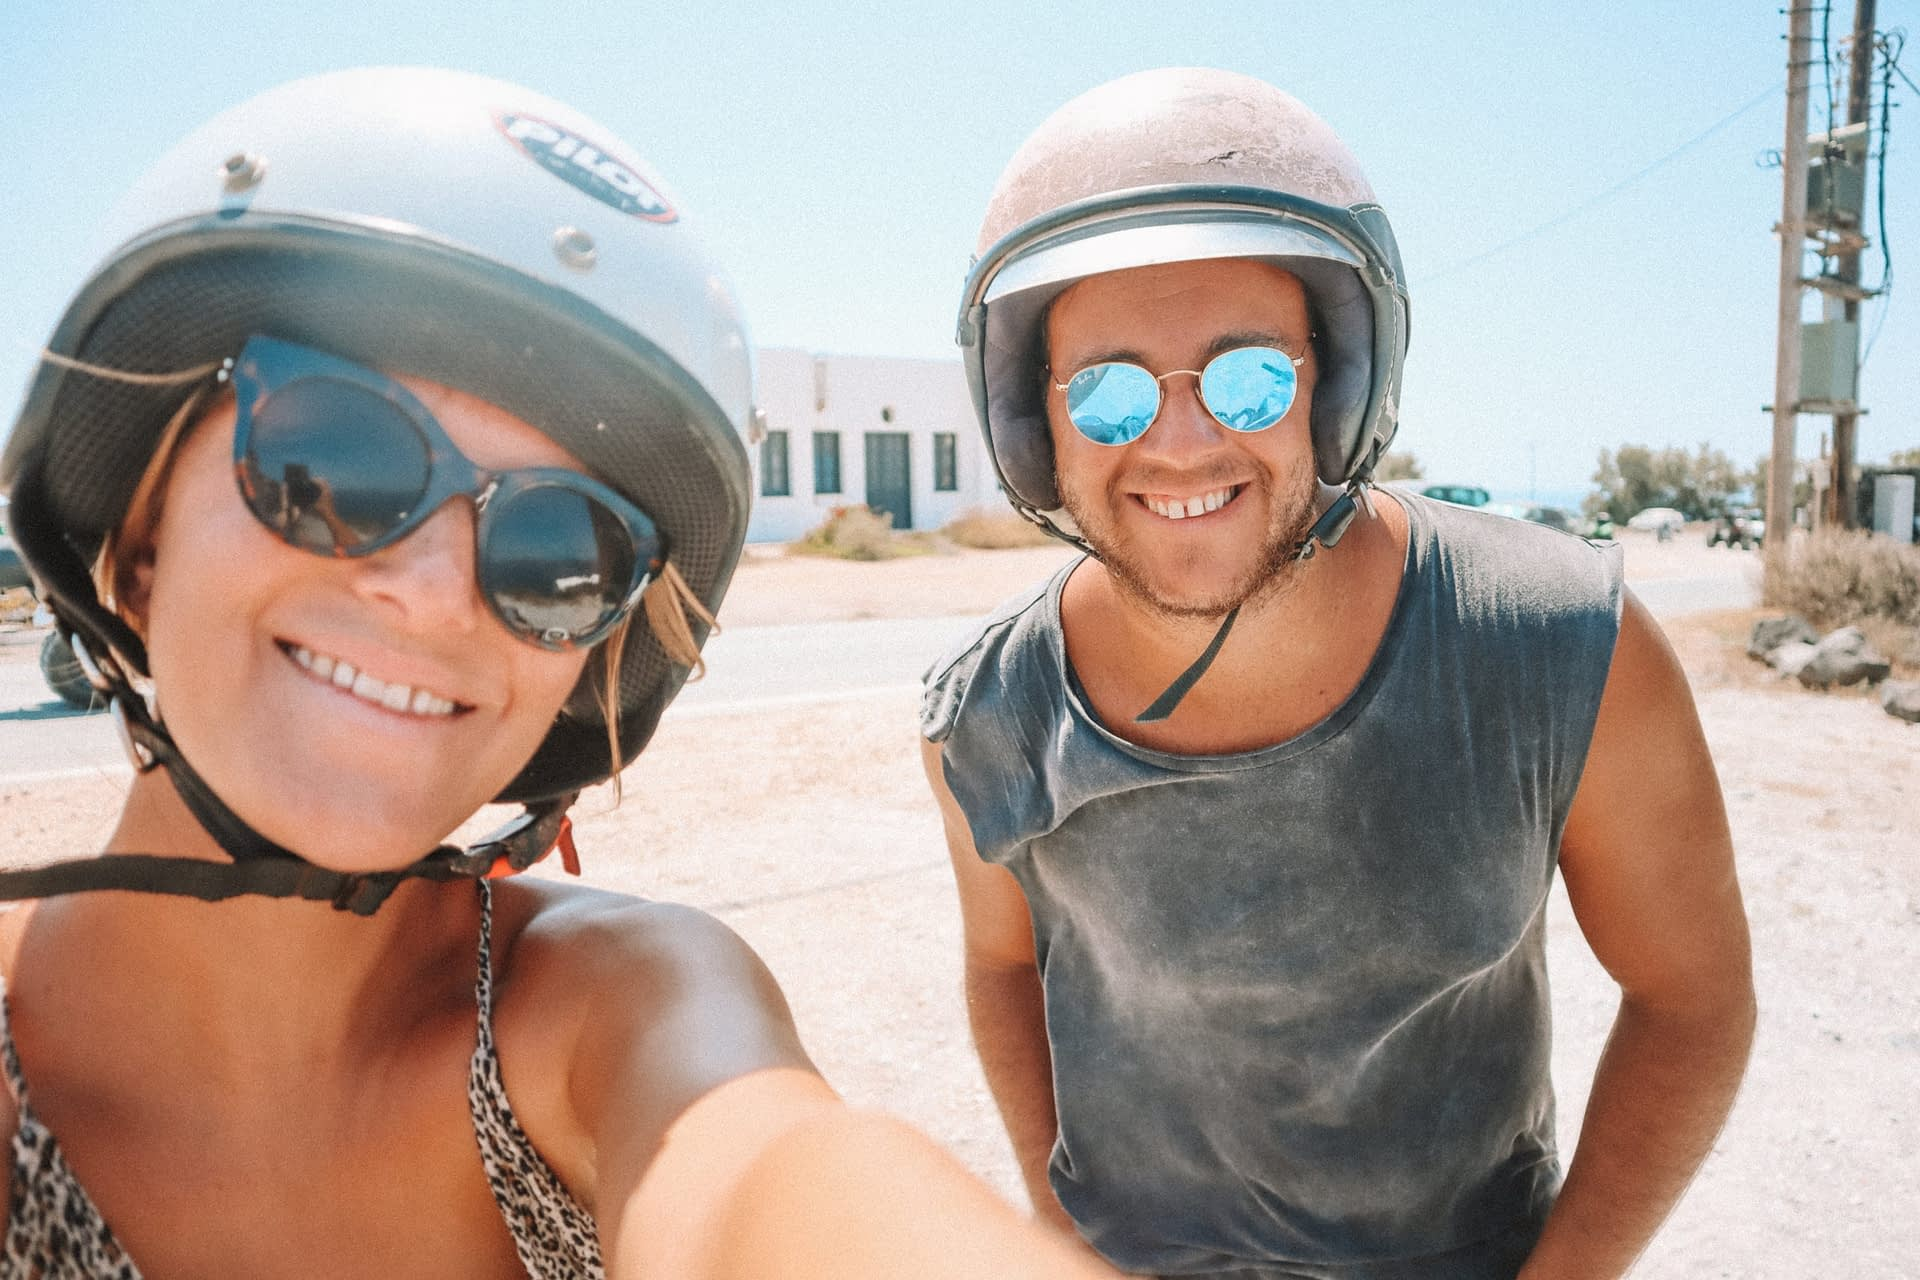 A couple taking a selfie with helmets on. How to get around in Santorini